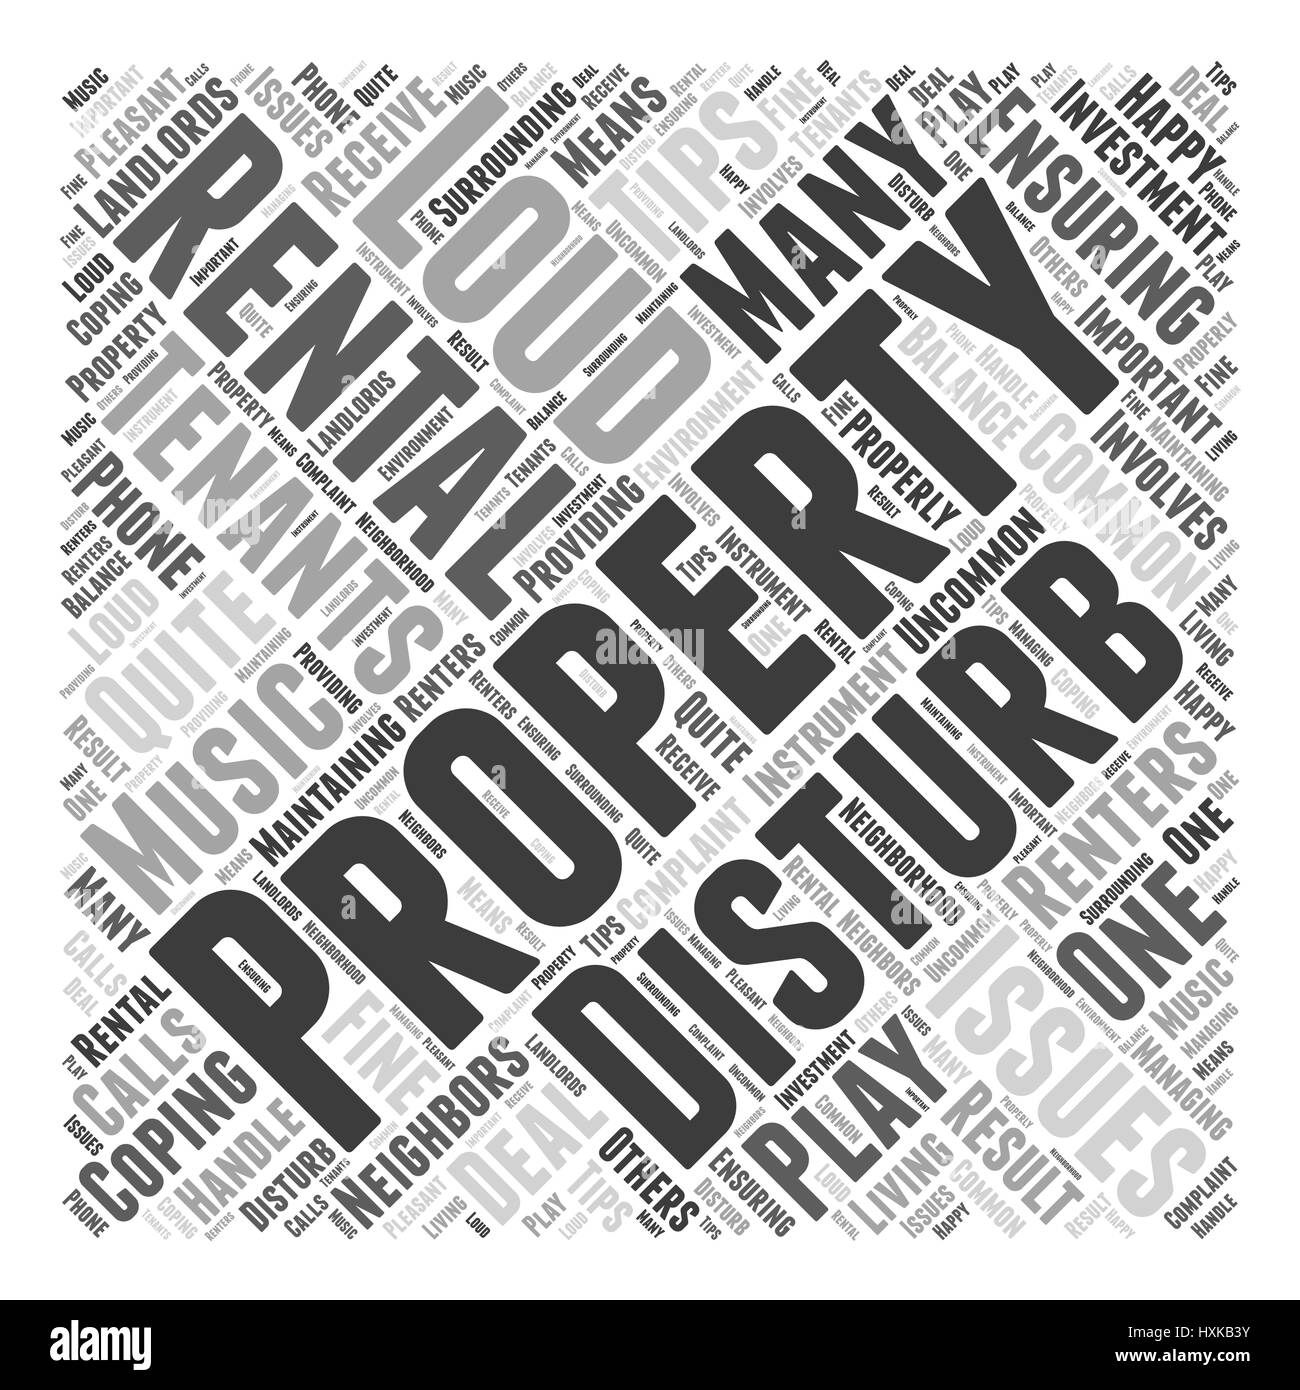 Tips for Coping with Loud Tenants Word Cloud Concept - Stock Image